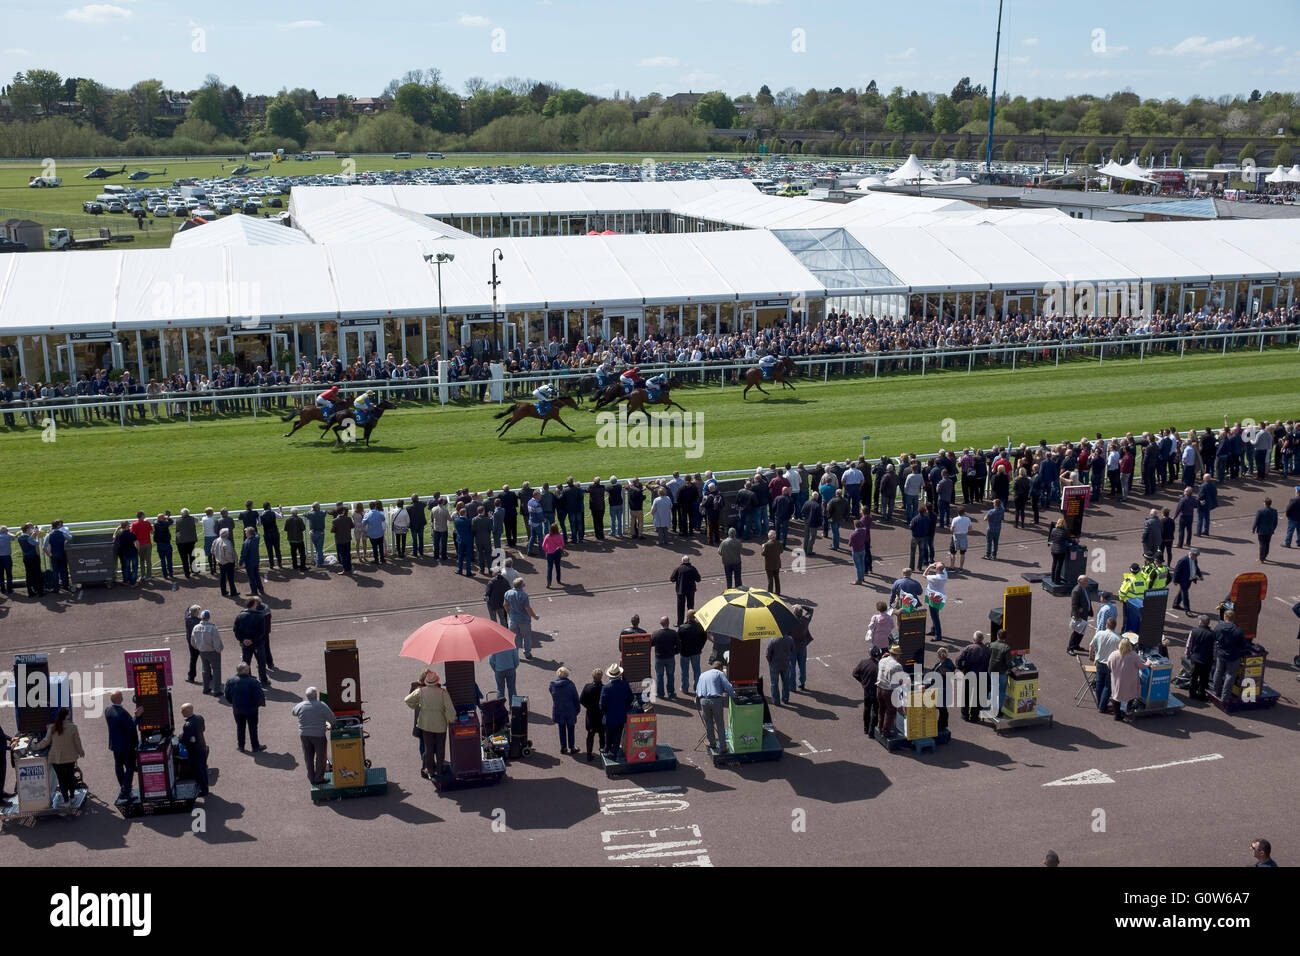 Chester, UK. 4th May, 2016. Chester Races. The first race of the first meeting of the 2016 season at Chester Race - Stock Image